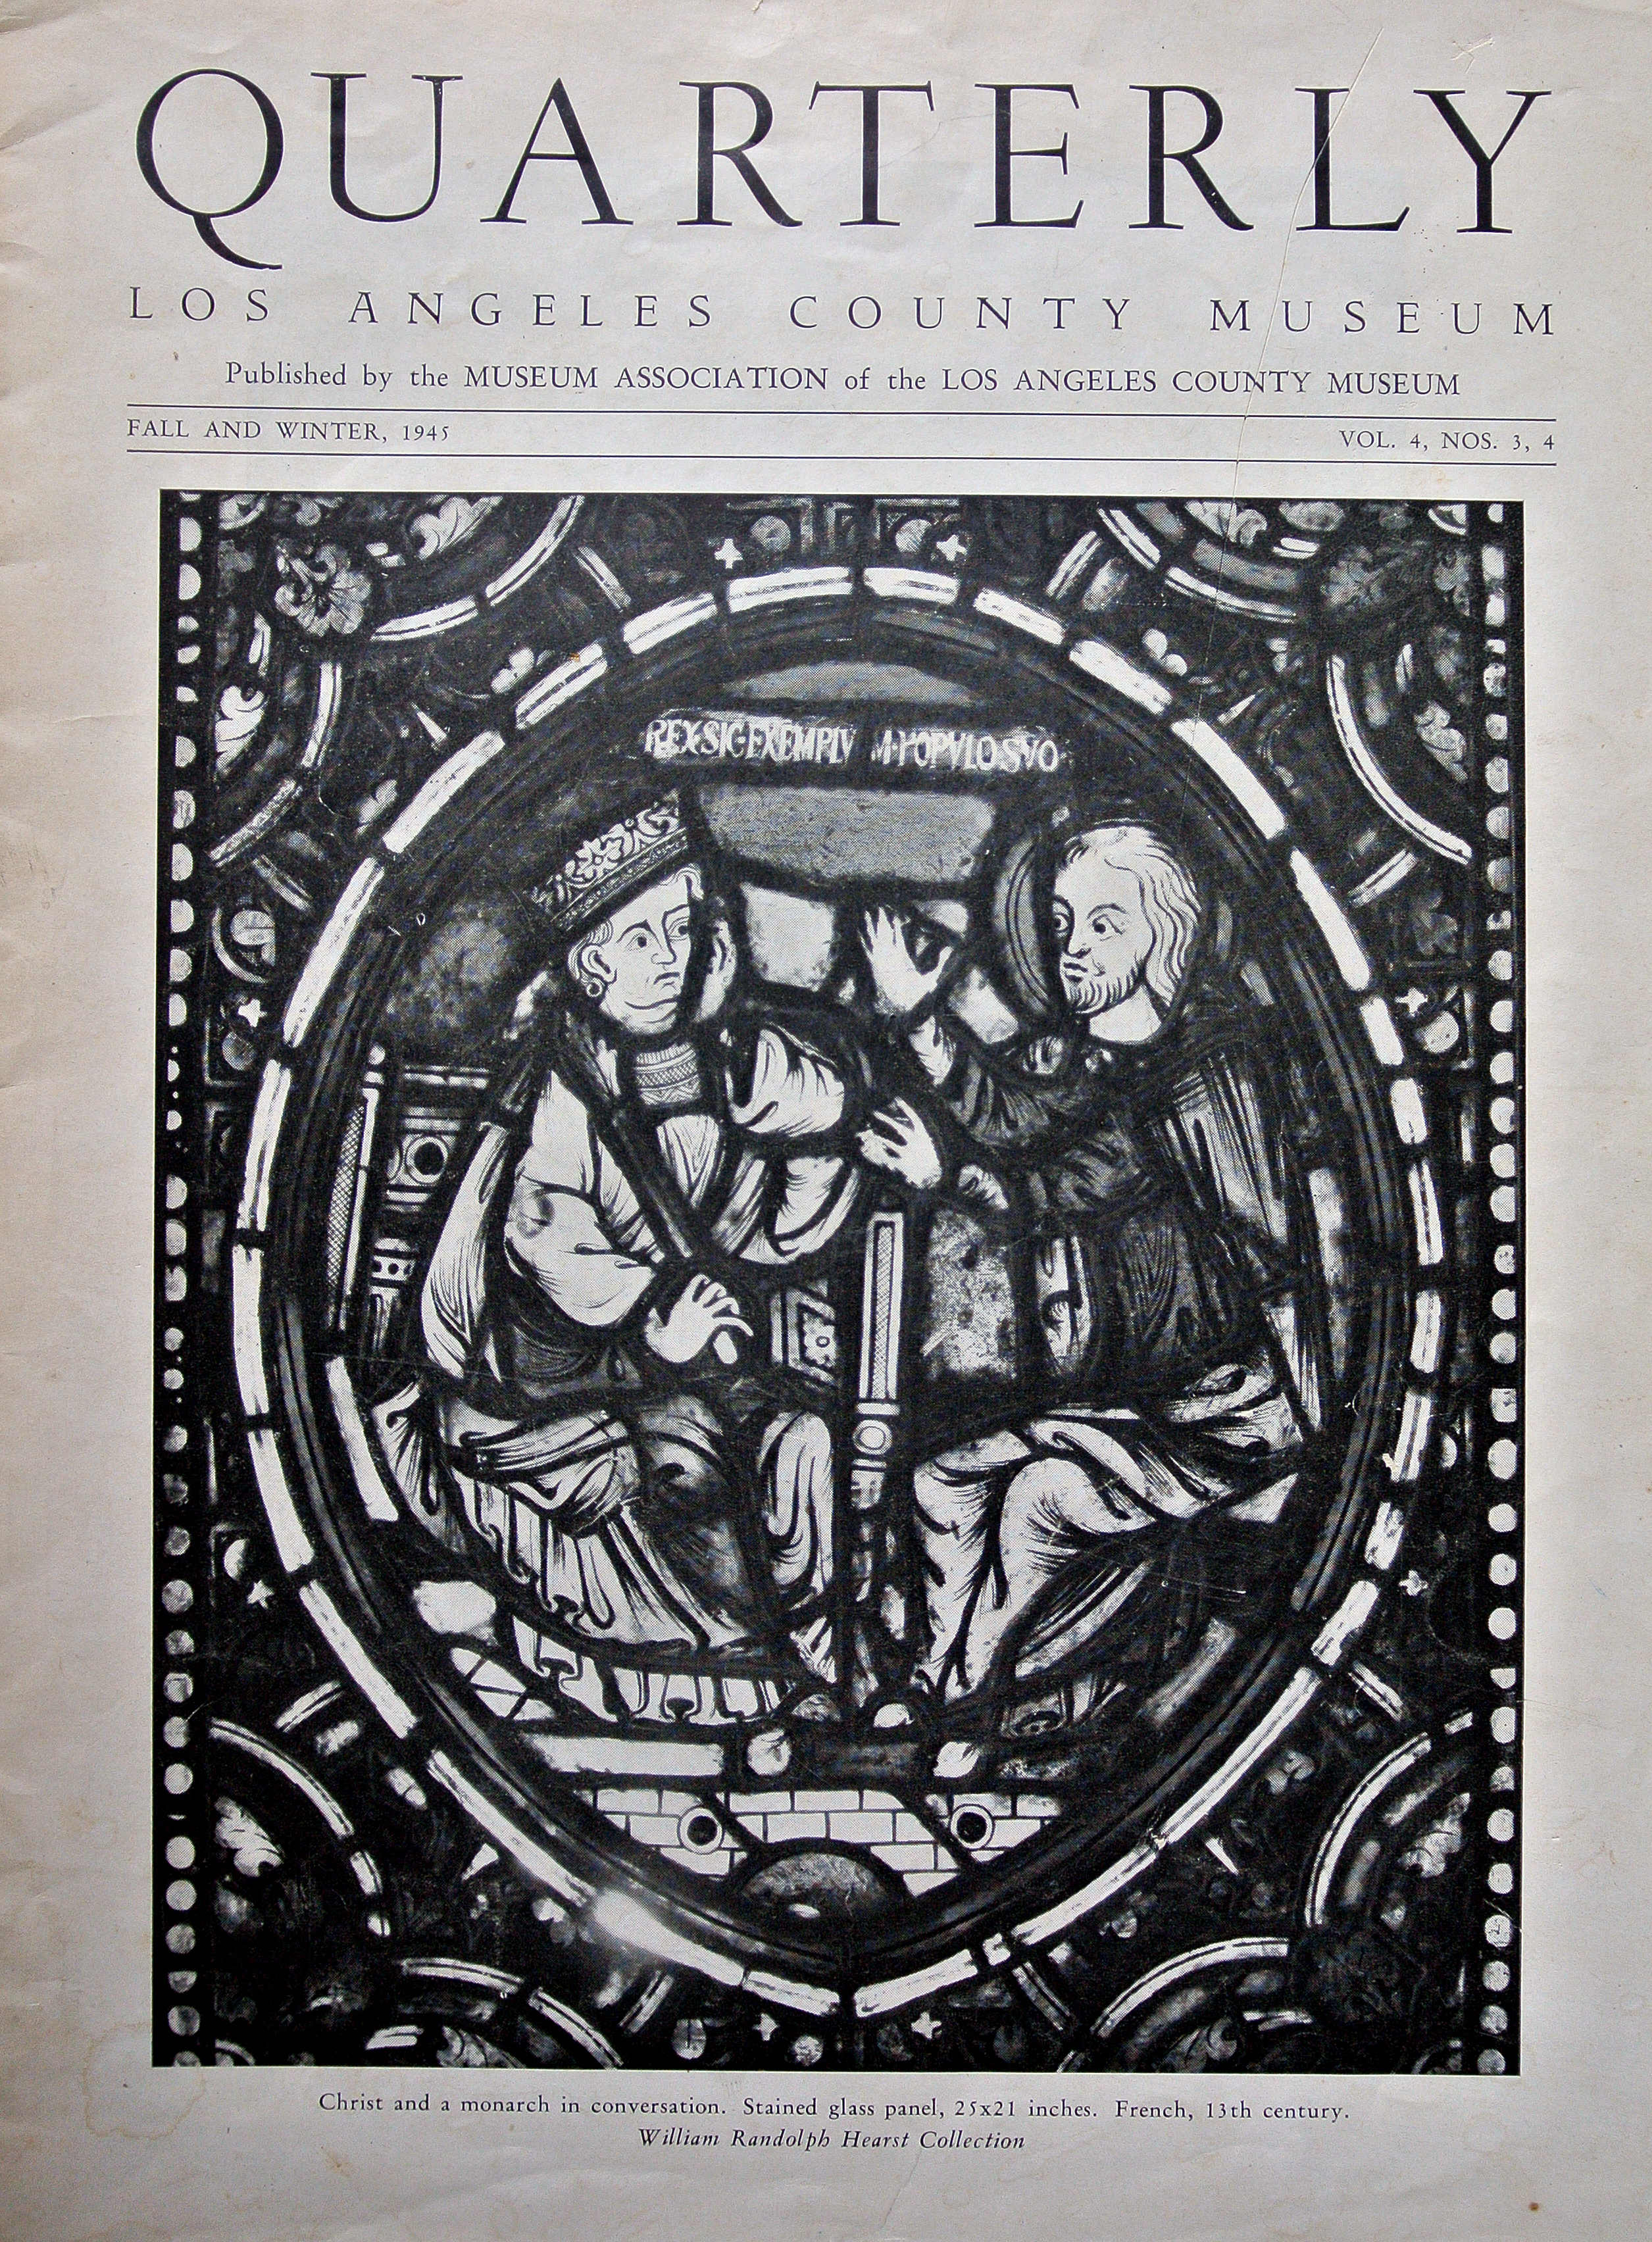 Untitled Document France Rouen Cathedral Diagram Of North Transept Stairs Seated Monarch Probably Early 20th Century Quarterly The Los Angeles County Museum Art Vol 4